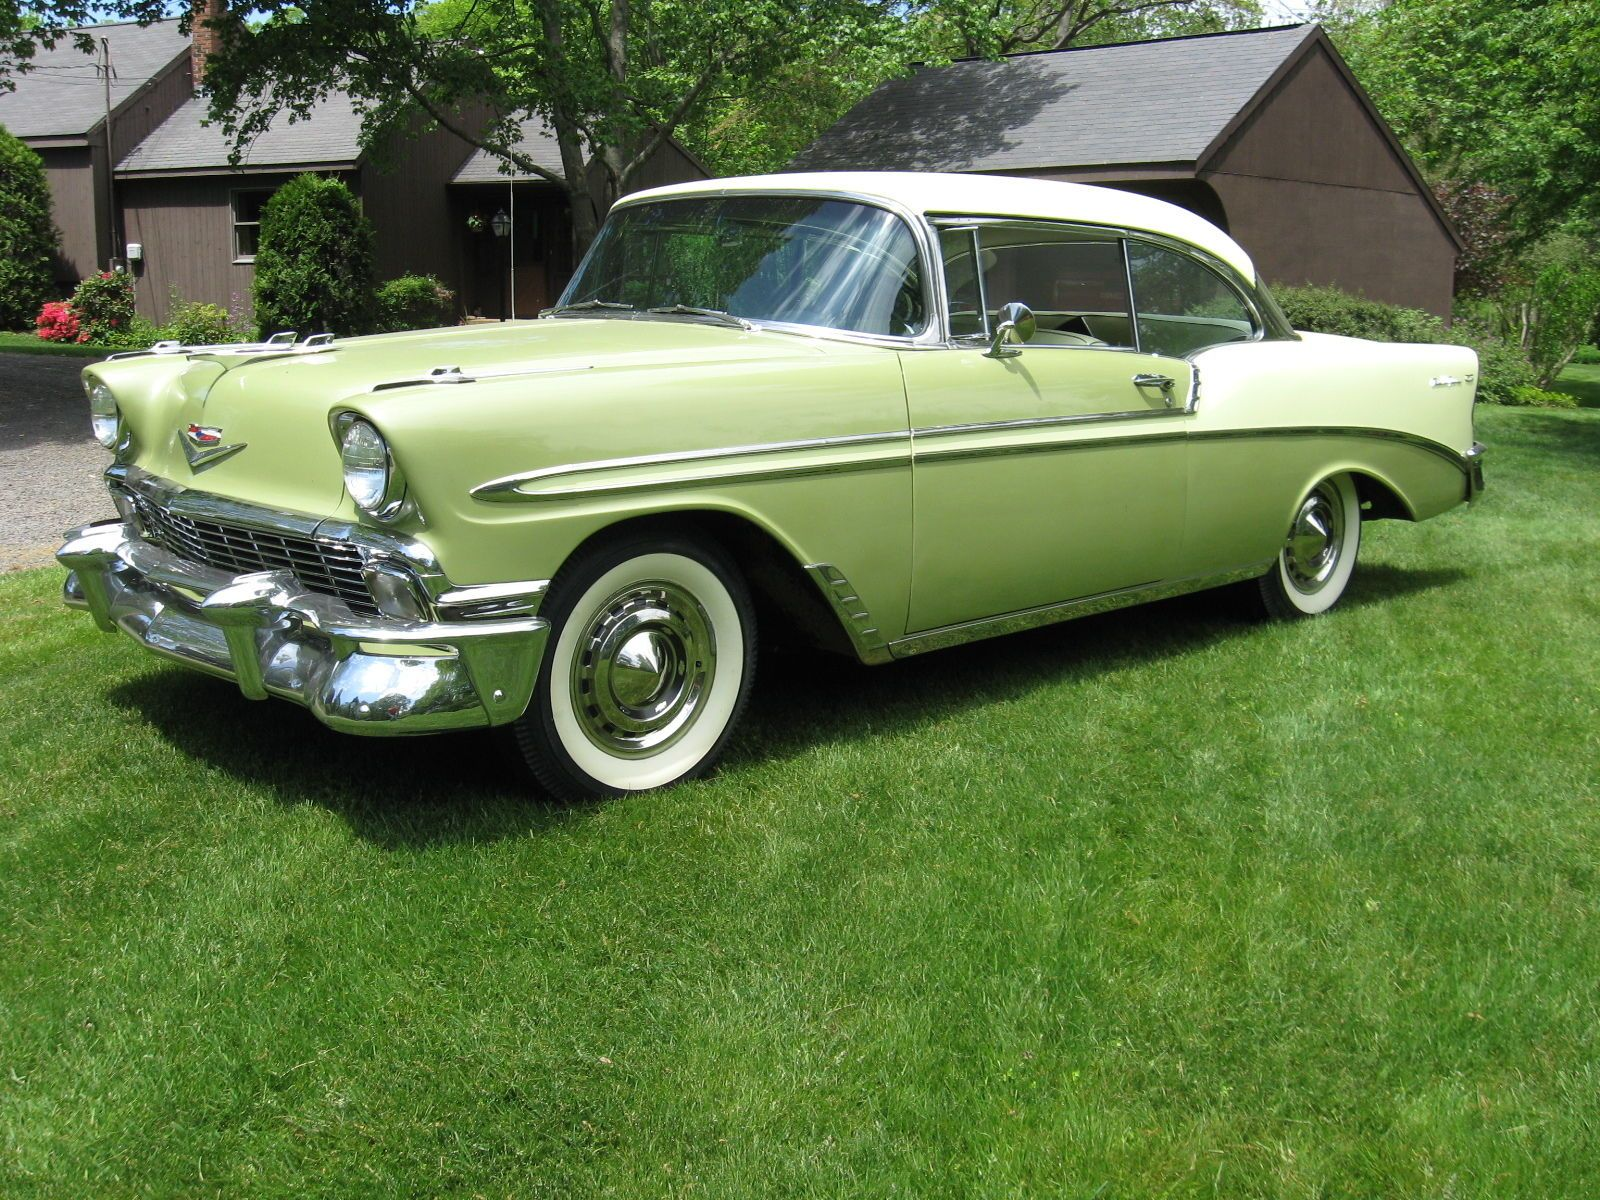 1956 Chevrolet Belair 2dr Hardtop Chevrolet American Classic Cars